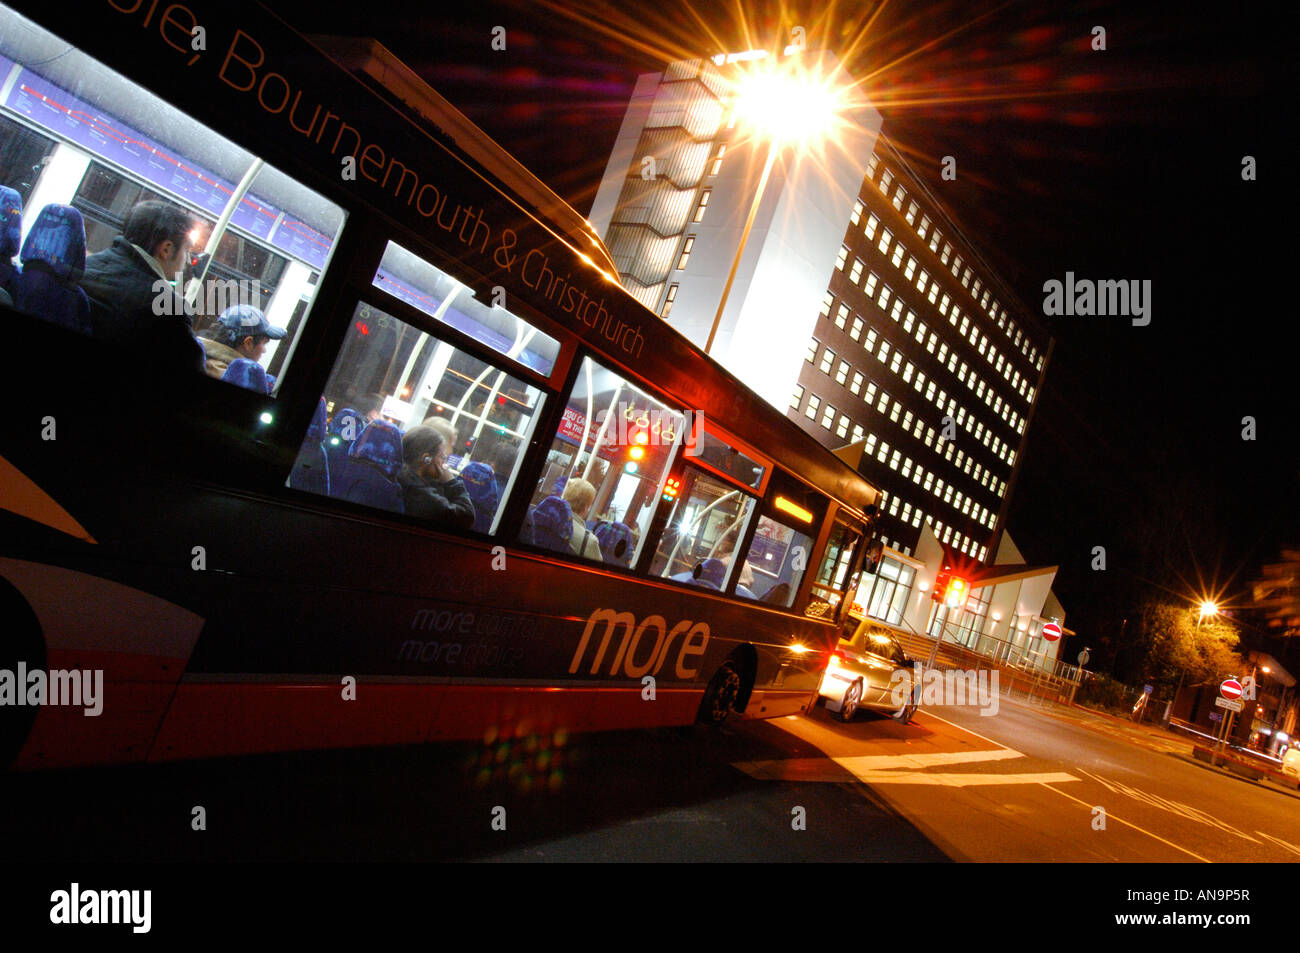 an office block at night with traffic light trails illuminated in a city or urban nightlife environment. - Stock Image